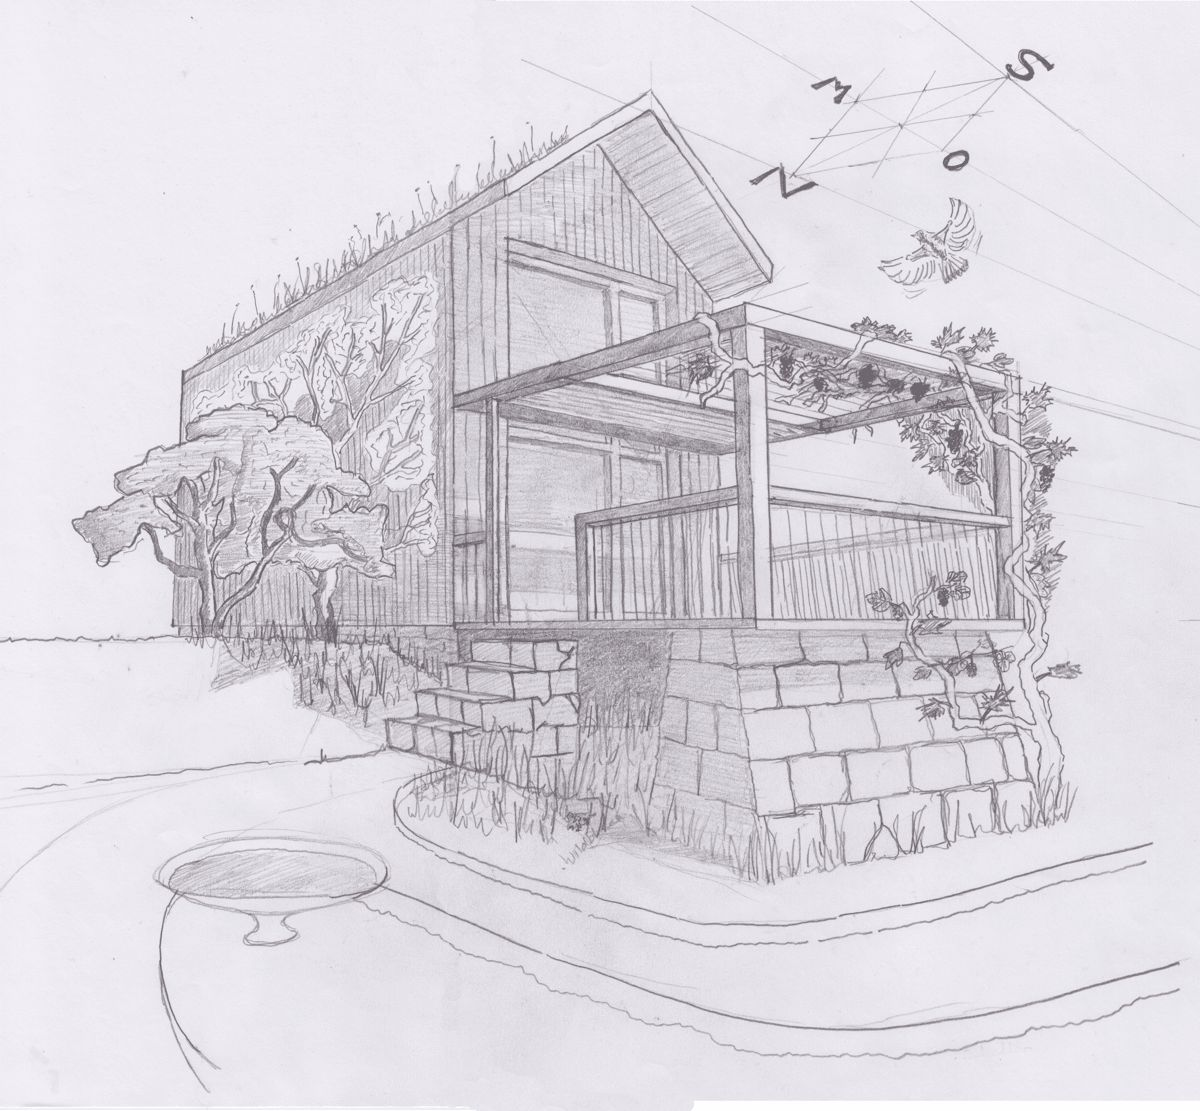 Architecture-handdrawing-fleeds-tiny-house-3500-3500